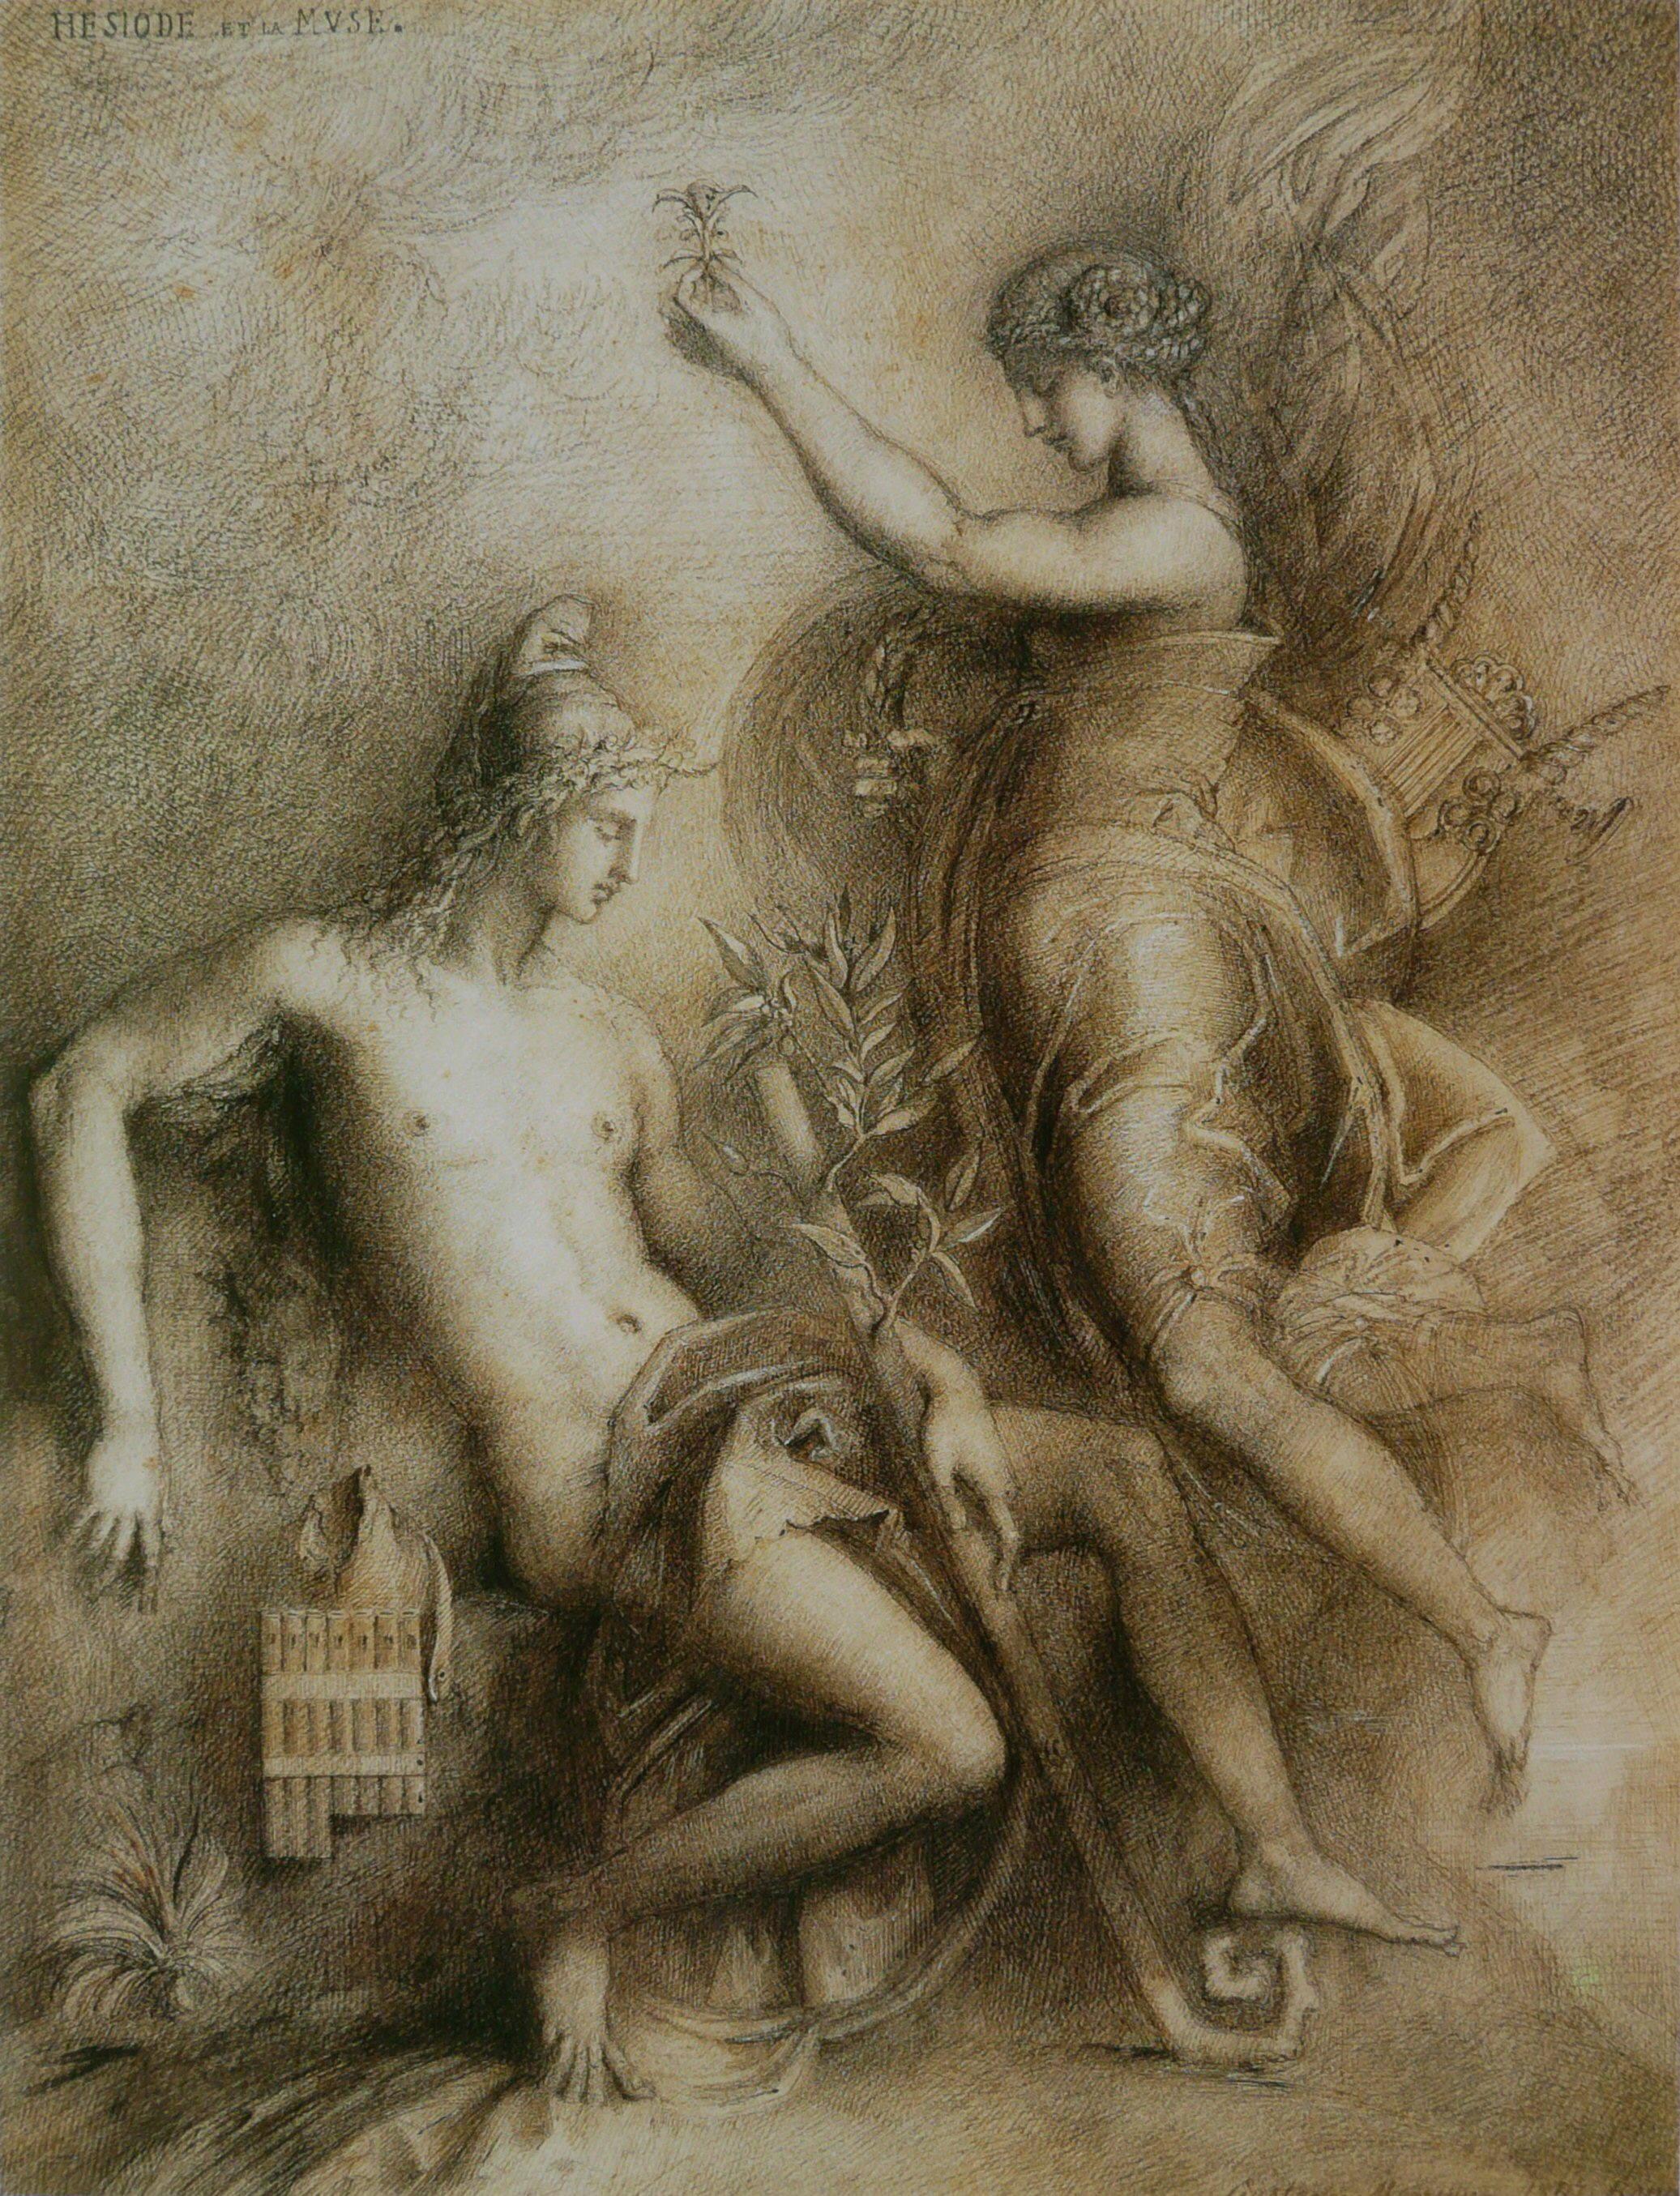 https://i2.wp.com/upload.wikimedia.org/wikipedia/commons/7/76/Gustave_Moreau_-_H%C3%A9siode_et_la_Muse.jpg